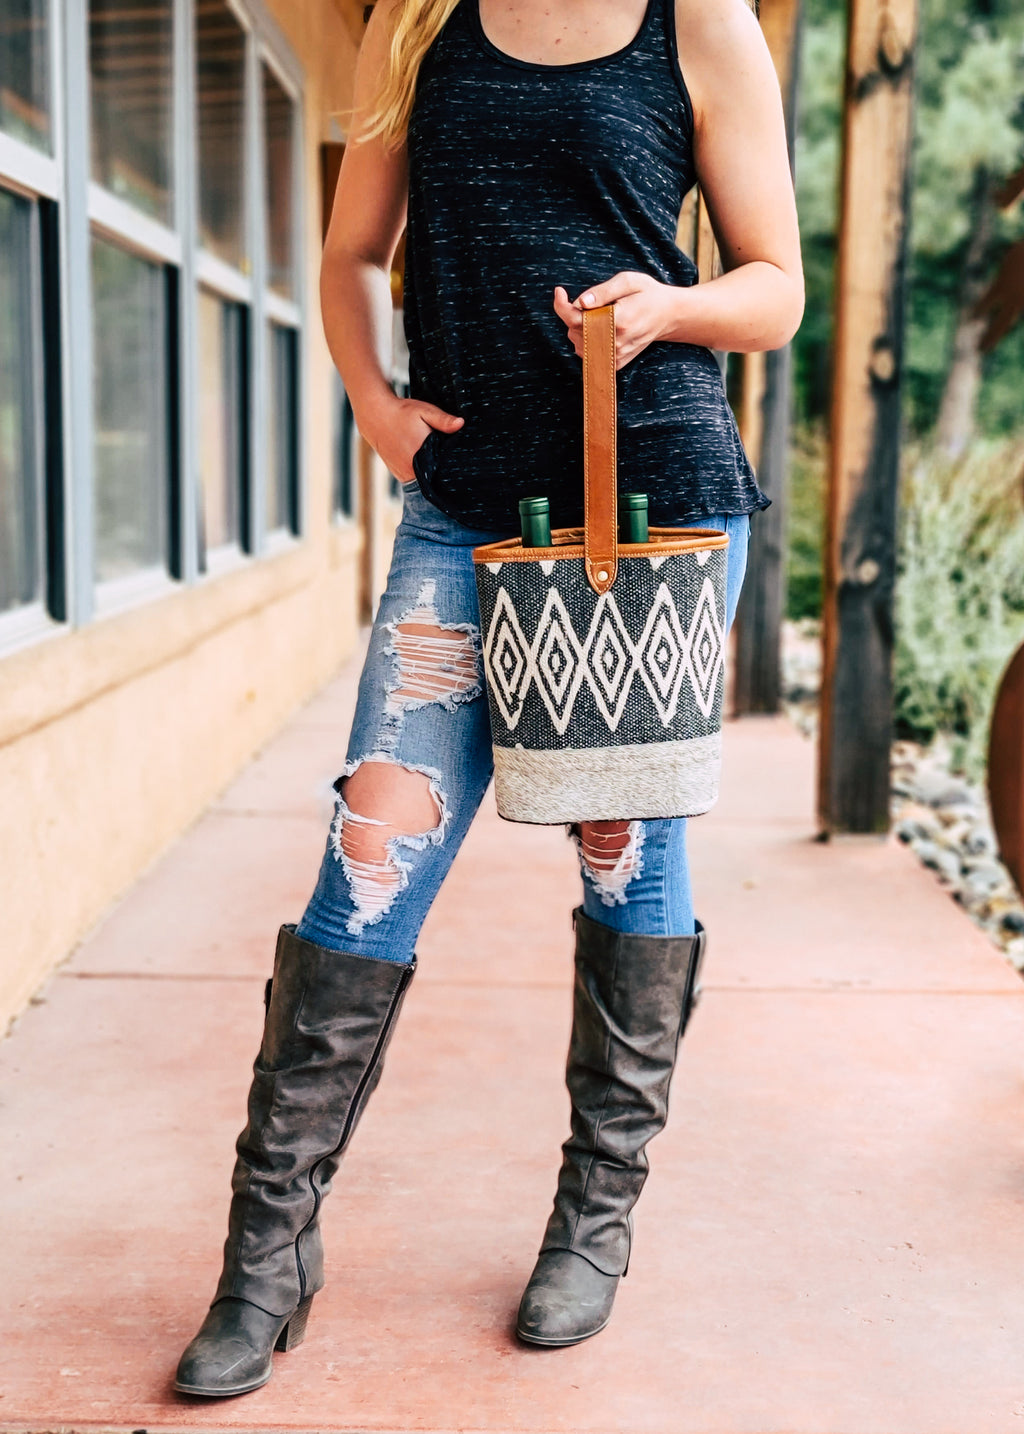 Grey Aztec & Cowhide 2 Bottle Caddy with Brown Leather Handle on Blonde Model Taken Outside